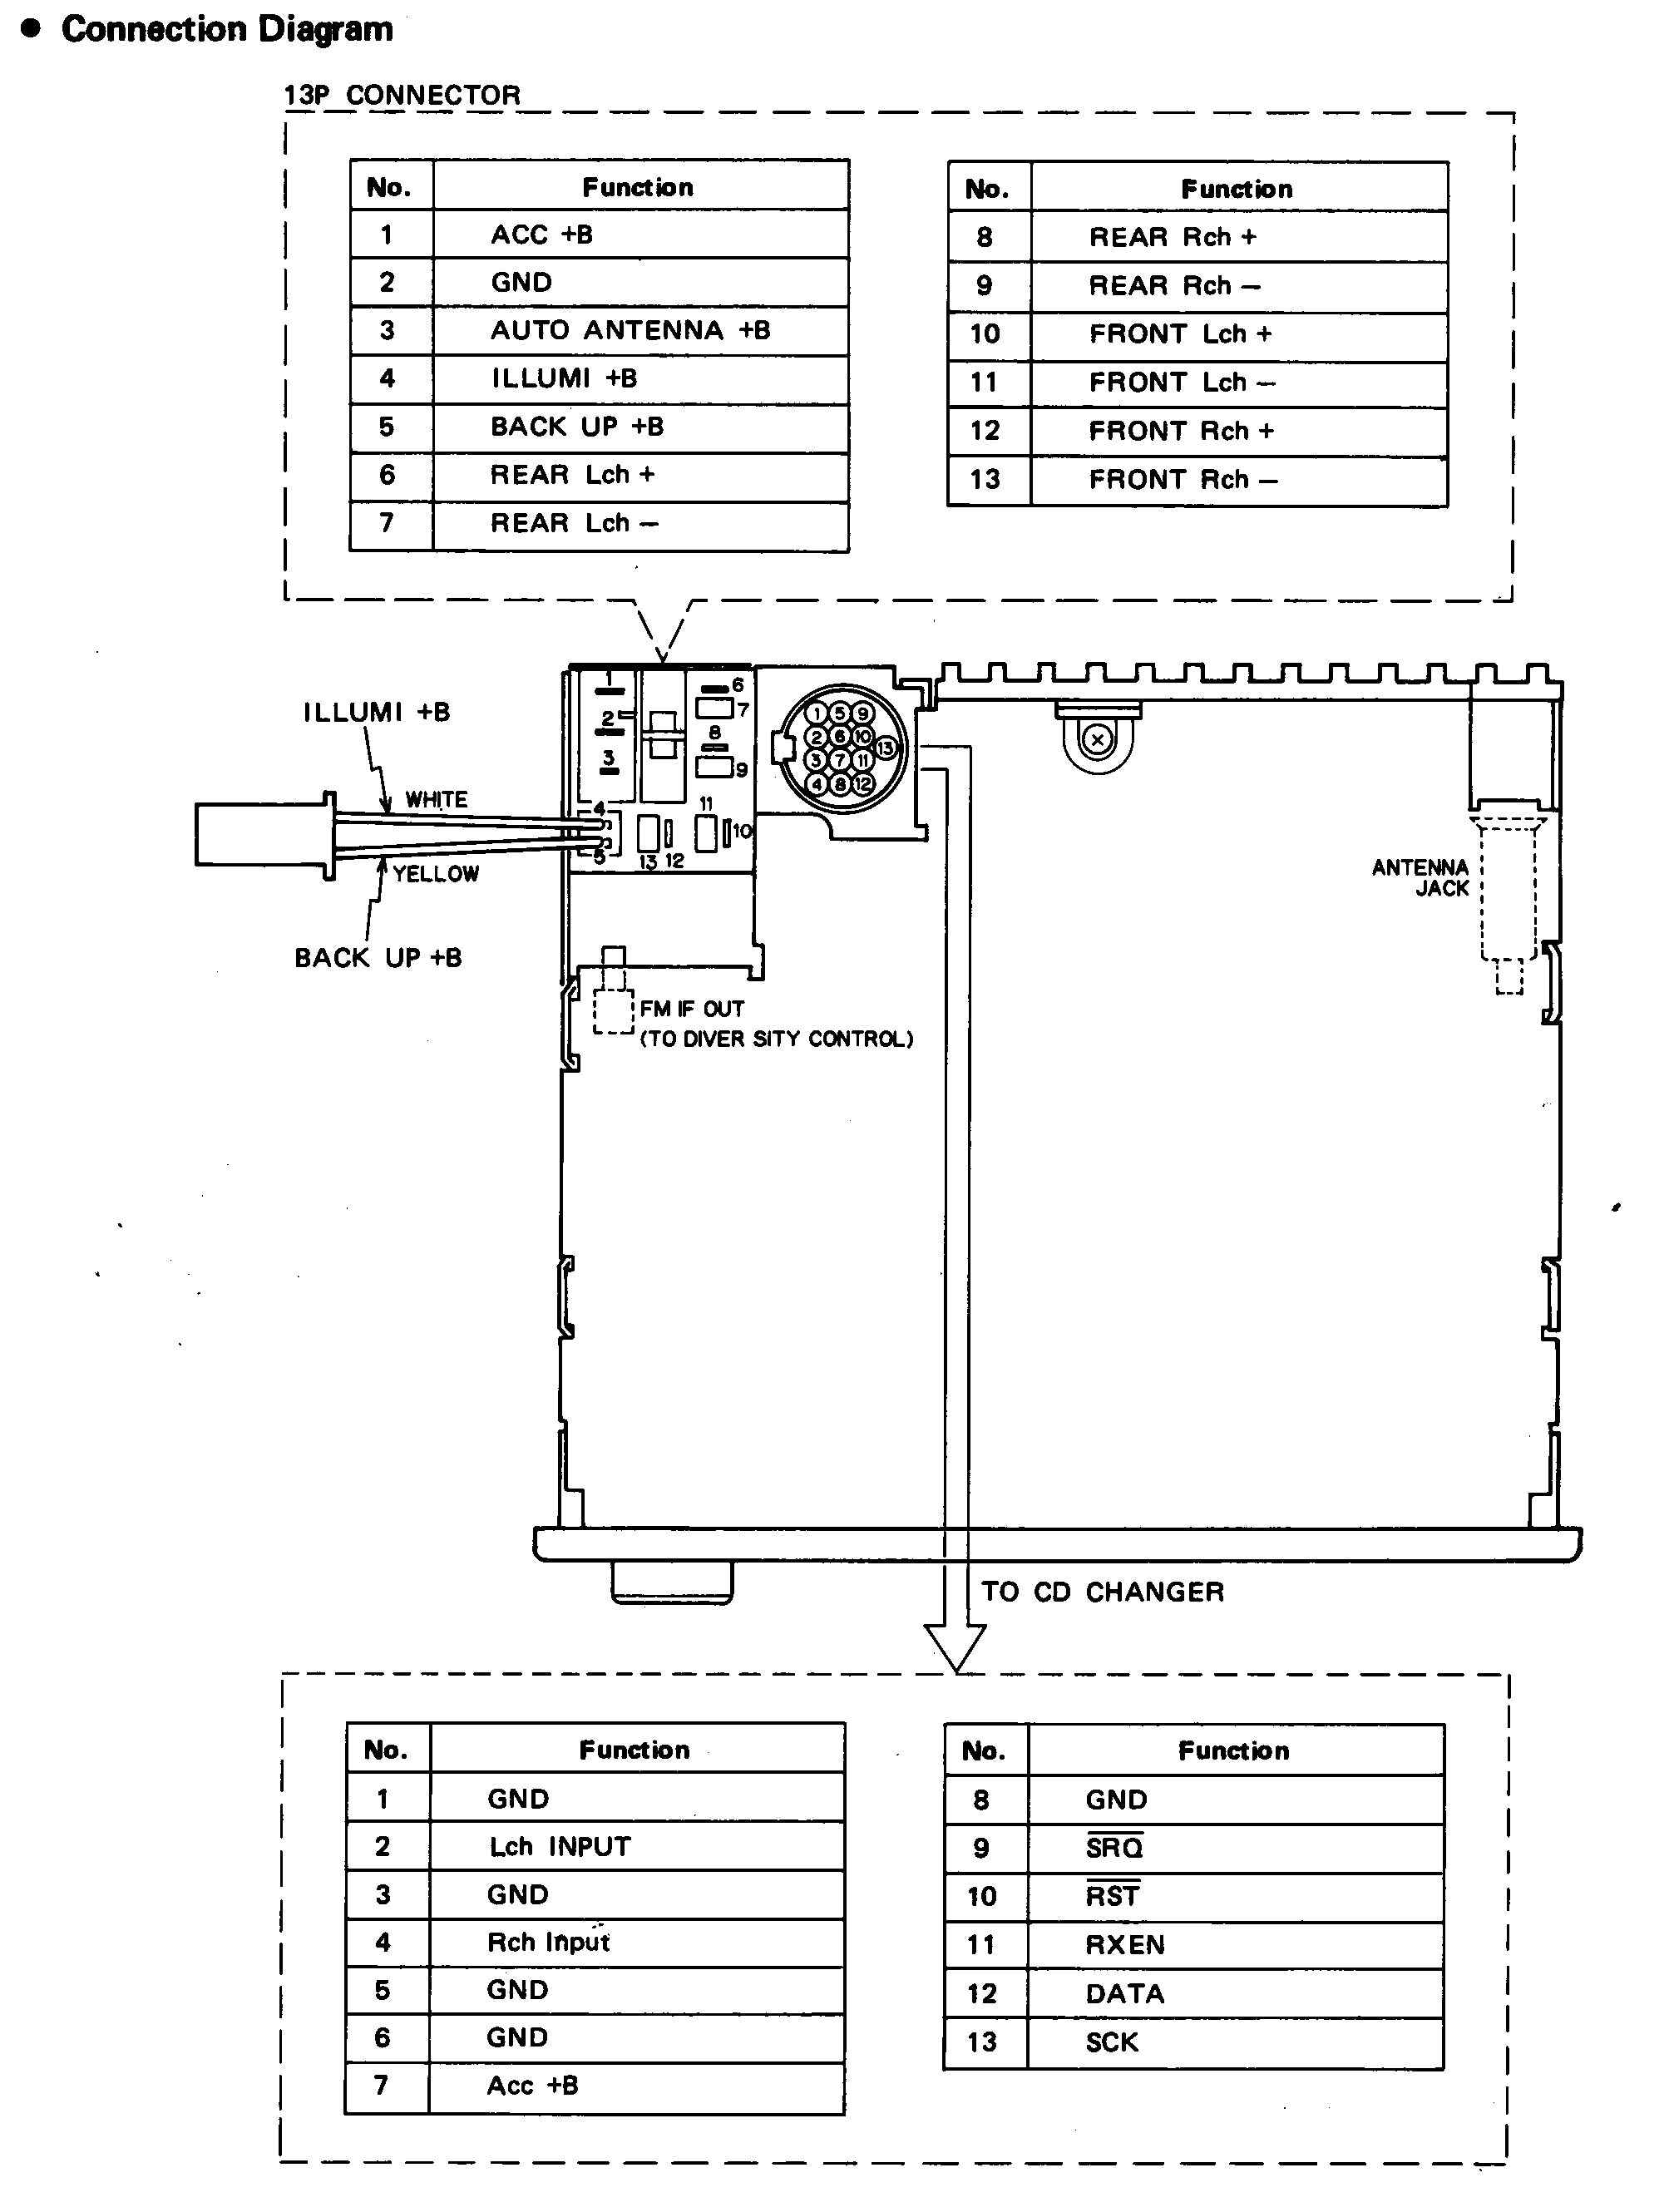 wiring diagram clarion radio made 1998 wiring library rh 69 akszer eu